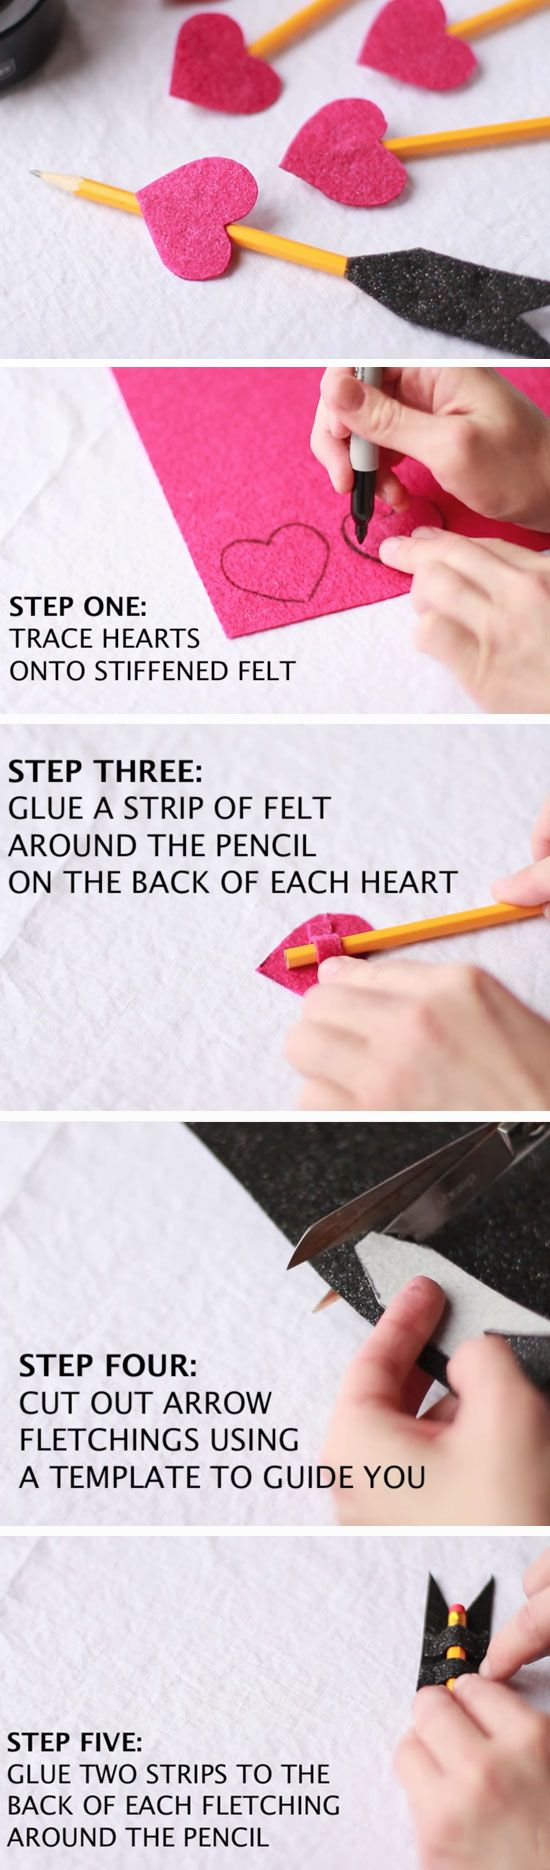 Heart Arrow Pencils | DIY Valentines Crafts for Kids to Make | Easy Valentines Day Activities for Classroom